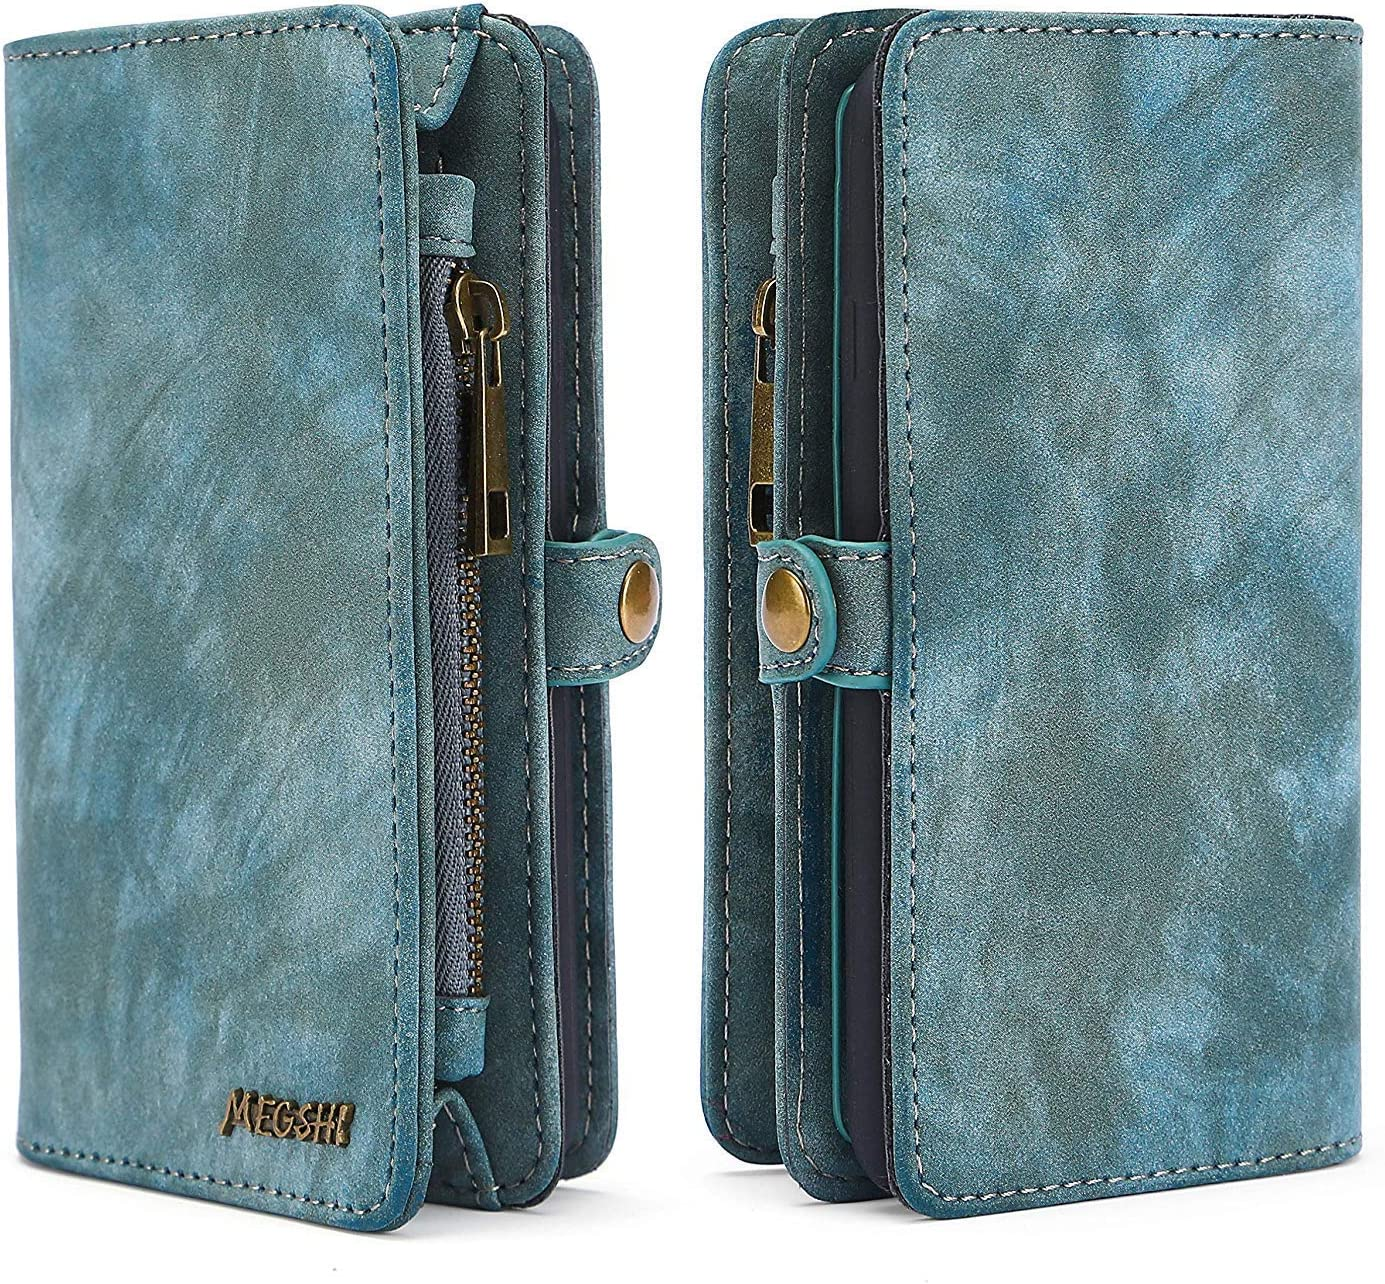 Spritech iPhone 7 Plus Wallet Case,Handmade Leather Large Capacity Detachable Scratch Resistant Zipper Wallet Cover with Credit Card Holder for iPhone 7 Plus iPhone 8 Plus